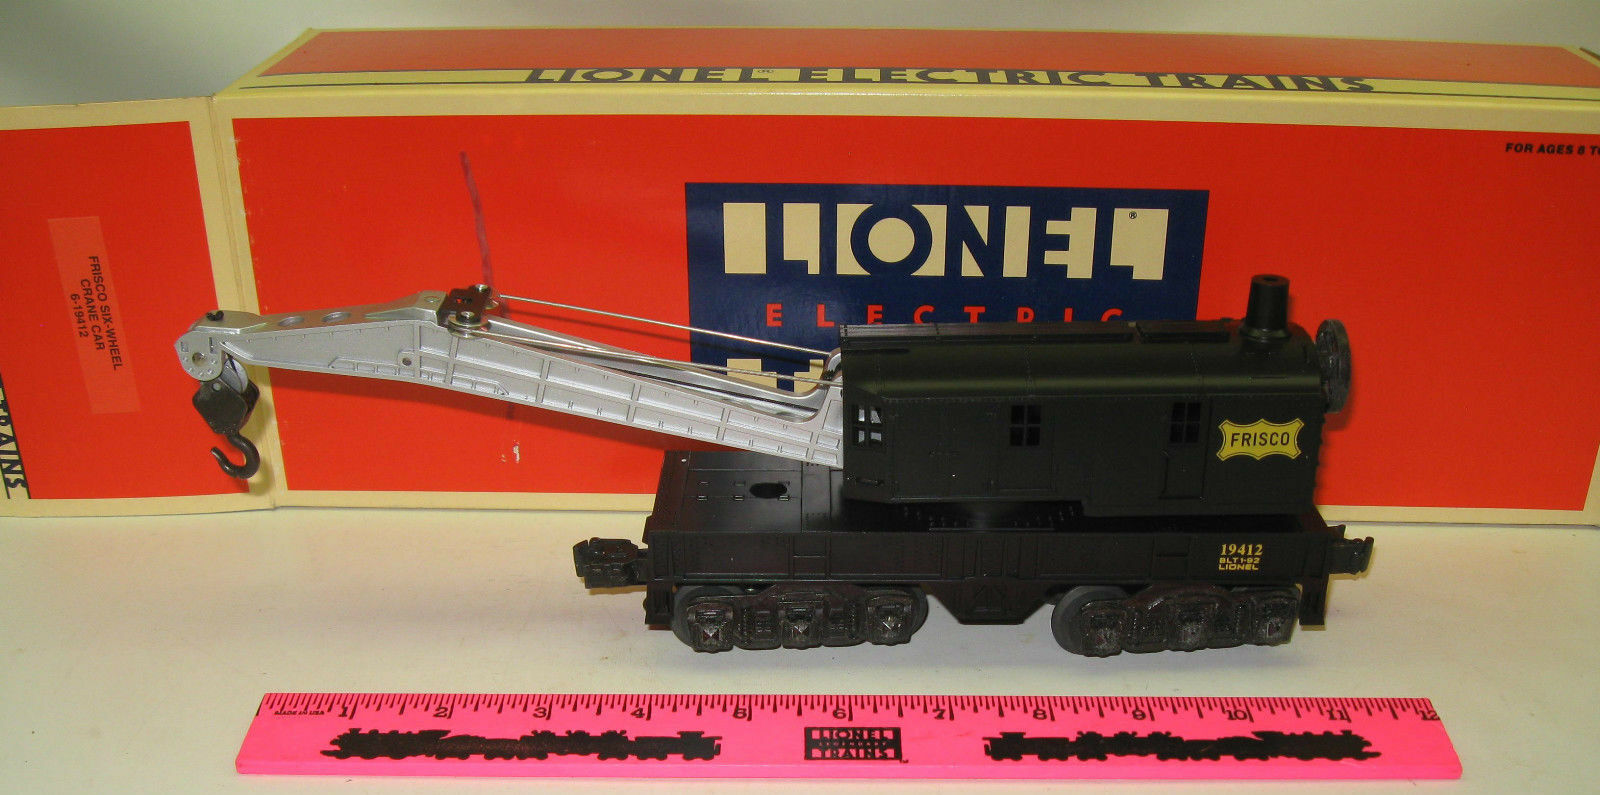 Lionel 6-19412 Frisco Six-wheel crane car